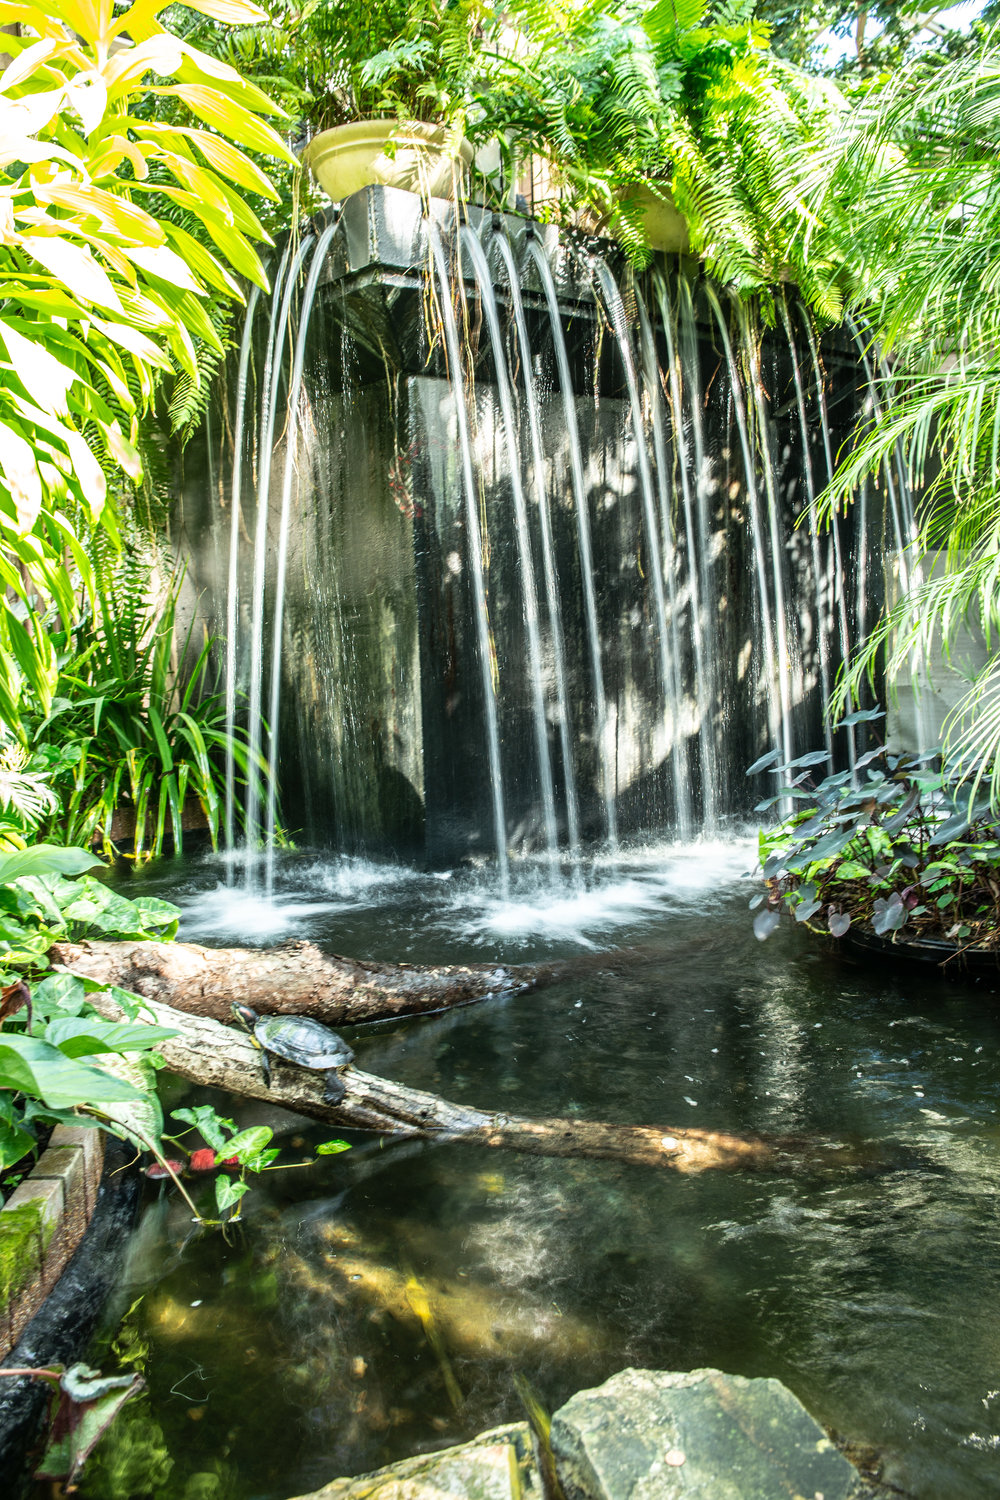 The waterfall in the Butterfly Garden was so peaceful